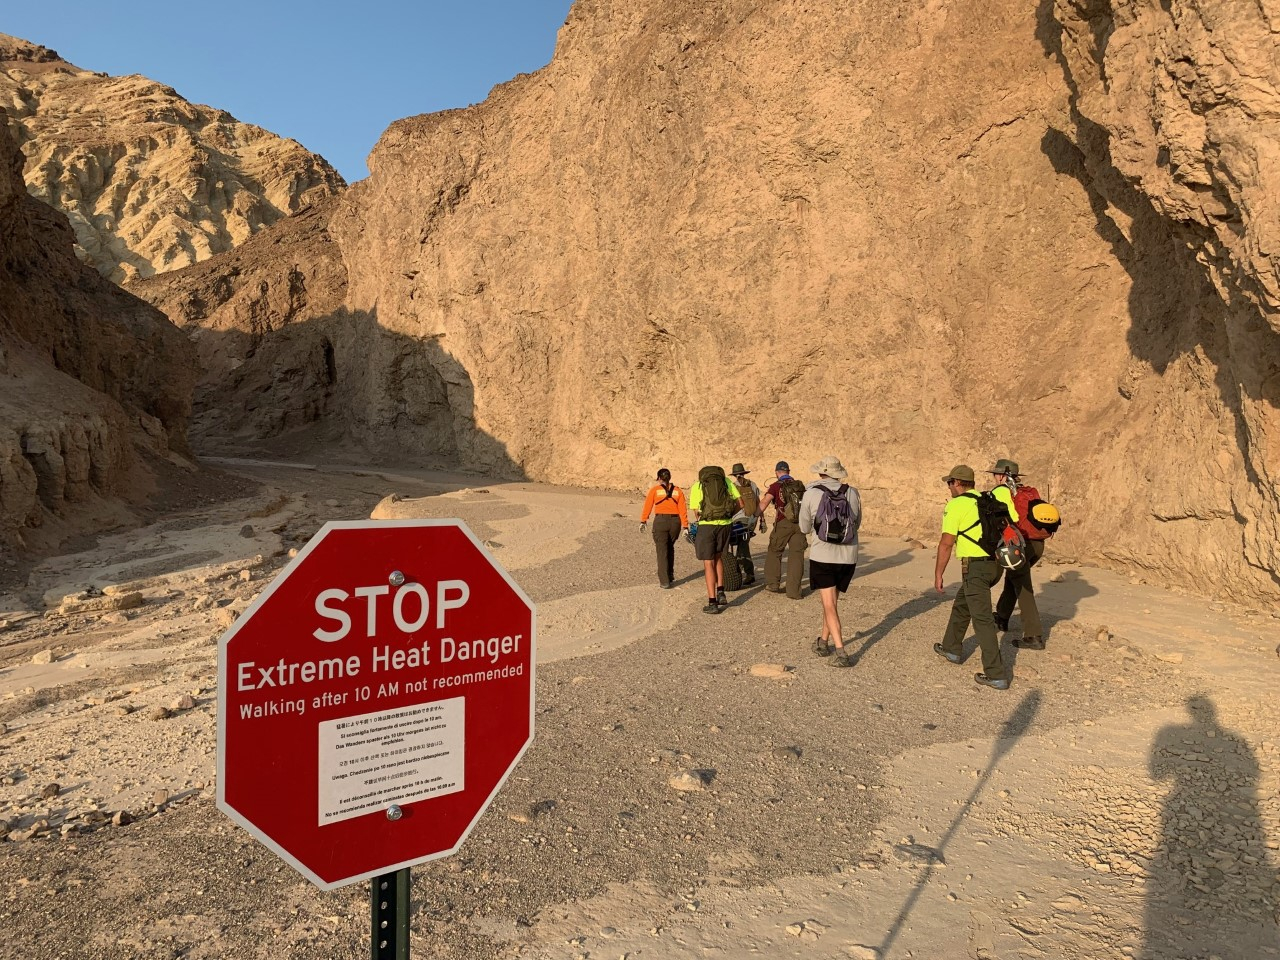 """In this Wednesday, Aug. 18, 2021, photo provided by the National Park Service, an inter-agency search and rescue crew walks past a sign reading"""" """"Stop, Extreme Heat Danger,"""" with park rangers responding on foot near Red Cathedral along the Golden Canyon Trail in Death Valley National Park, Calif. (National Park Service via AP)"""